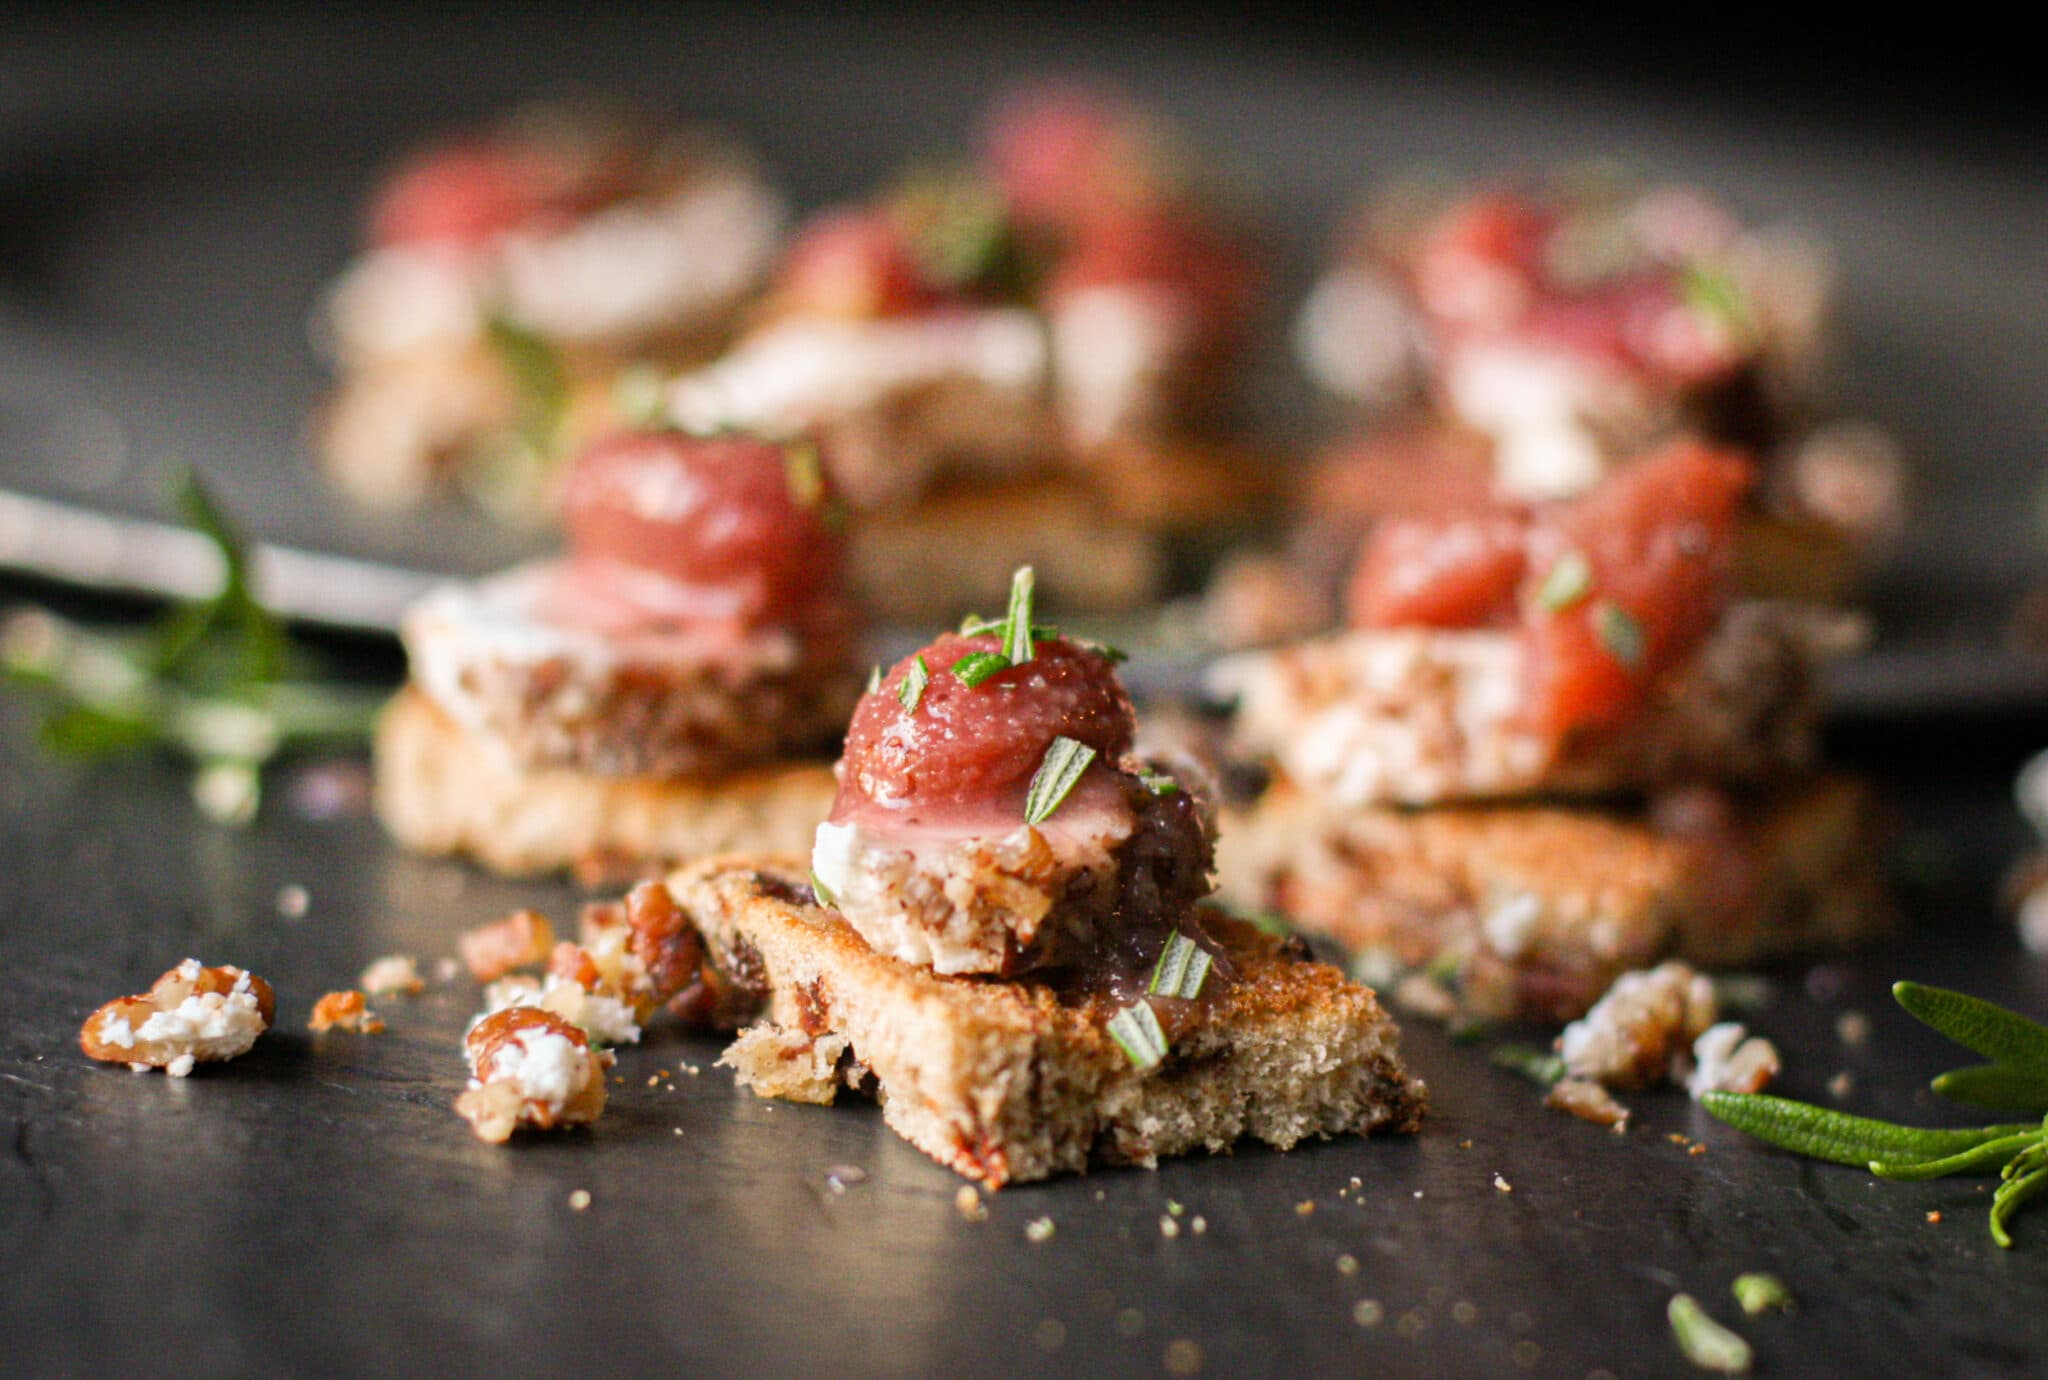 Pecan-Crusted Goat Cheese Toasts w/ Red Grape Compote